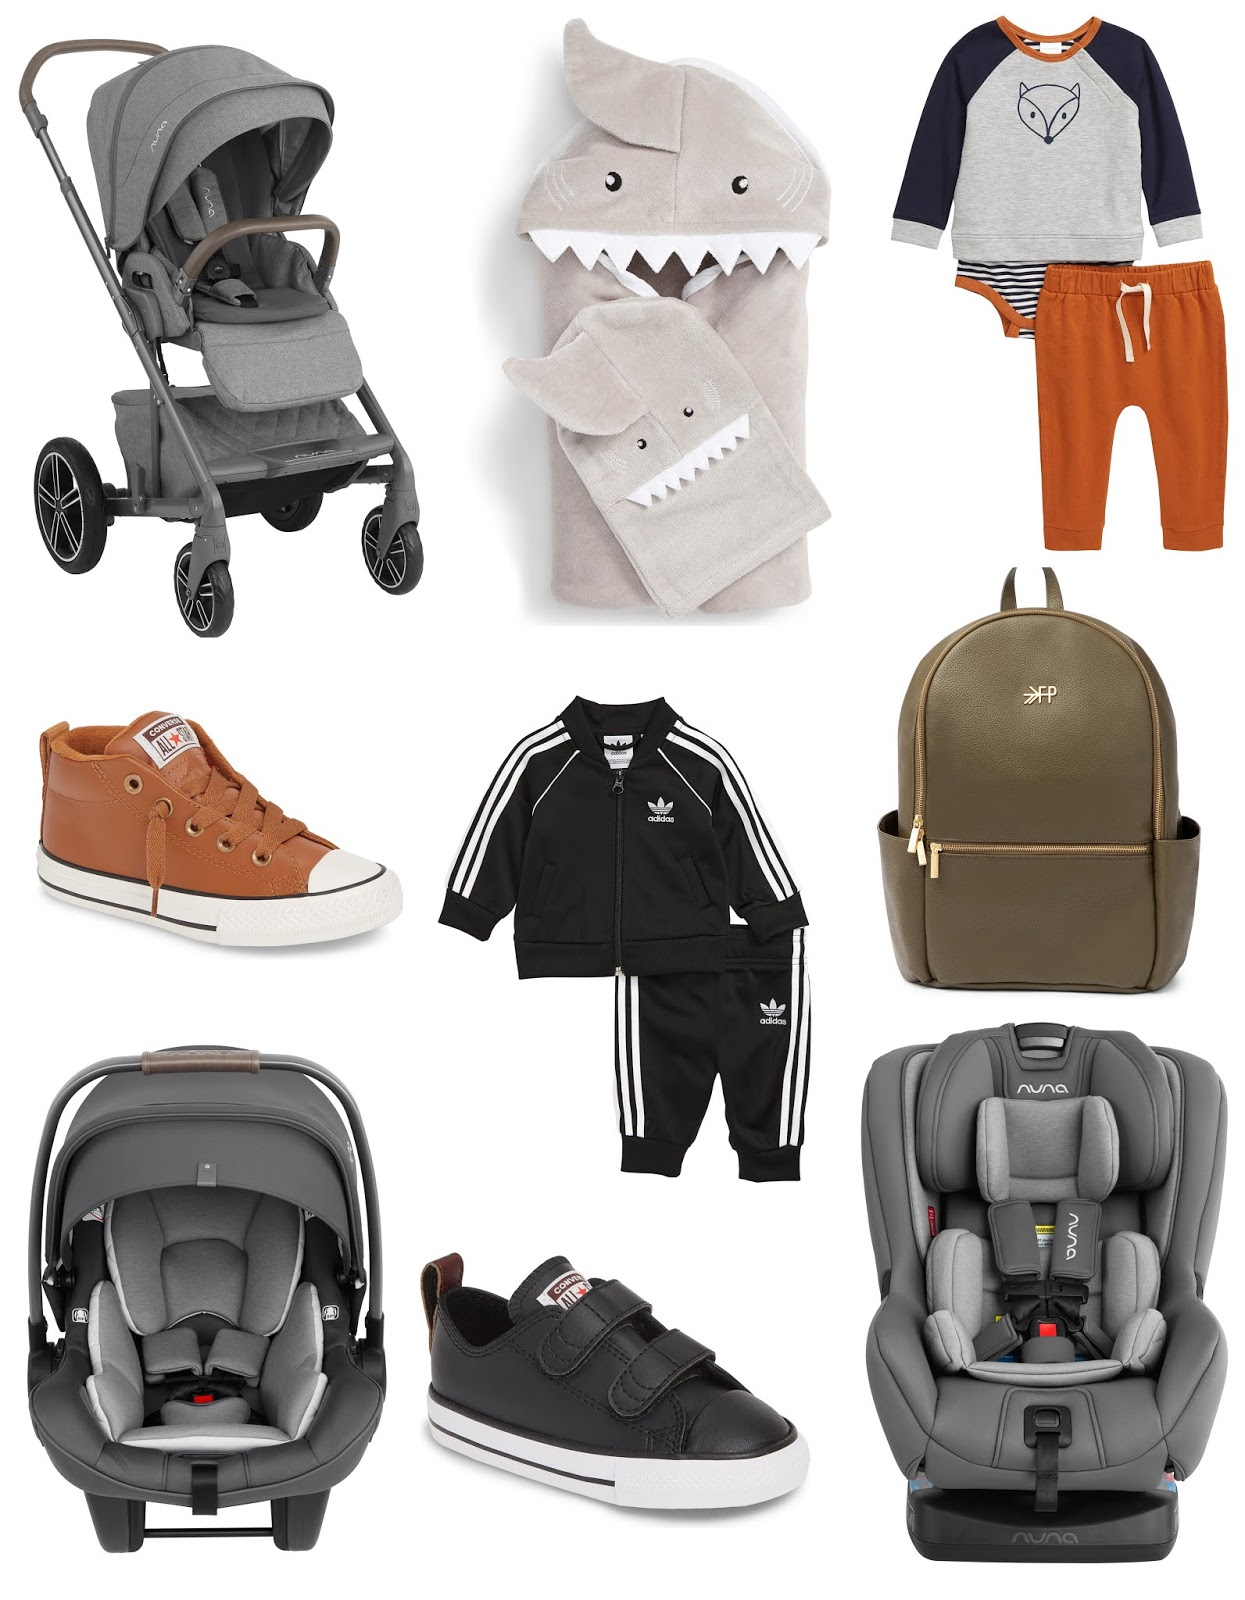 837ddc97b A Little Bit etc.: A Few Must Have Baby/Kid Items To Buy From the ...